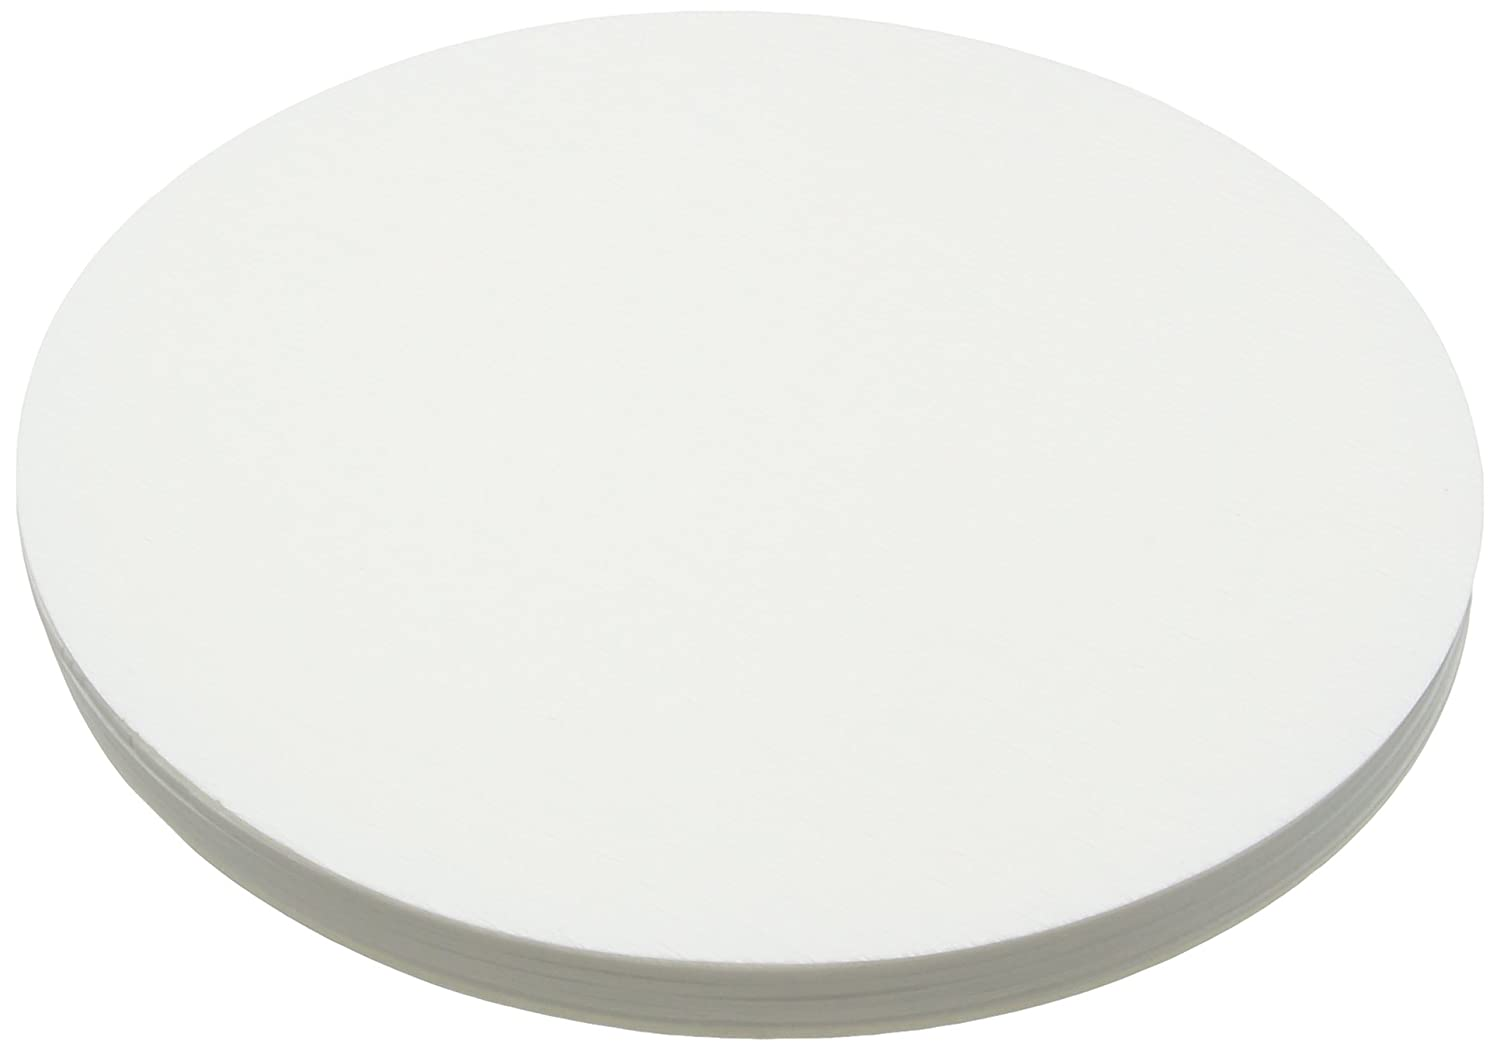 Camlab 1171139 Grade 304 [113] Technical Grade Creped Filter Paper, 40 mm Diameter (Pack of 100)